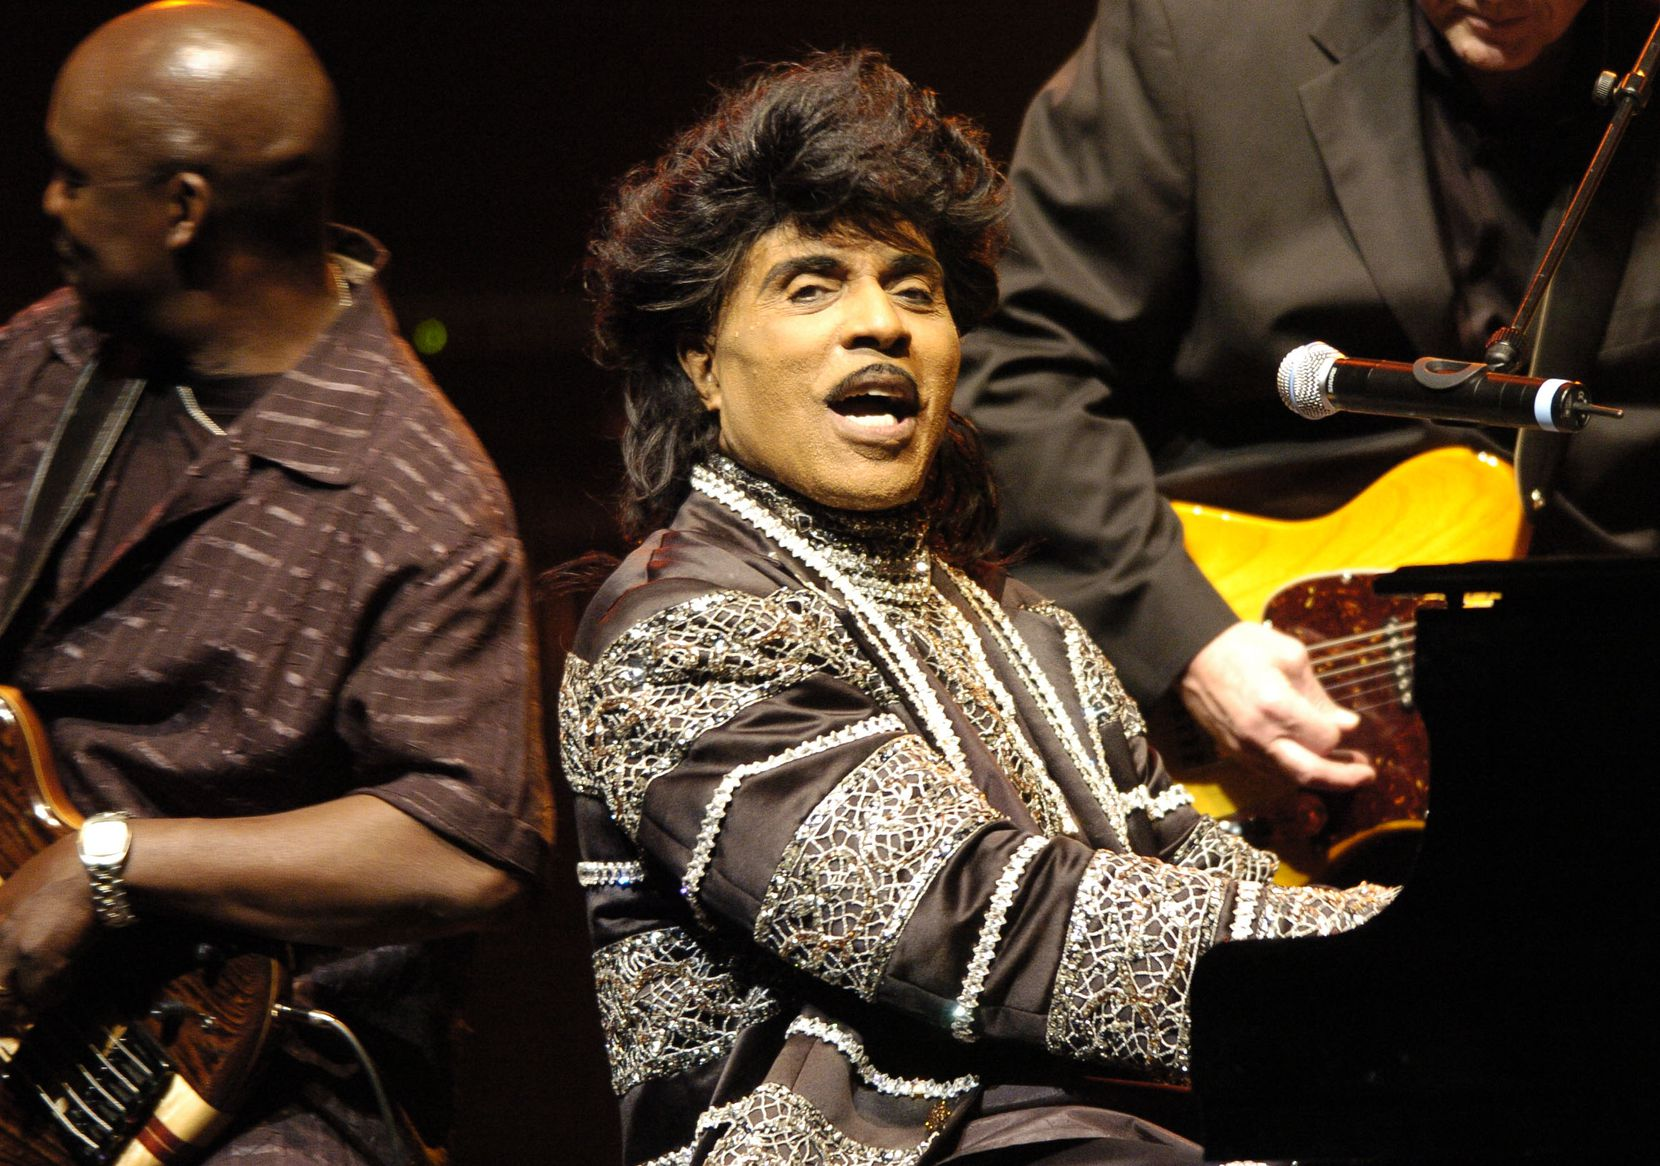 Little Richard performs in 2005 on the stage of the Olympia Concert Hall in Paris.